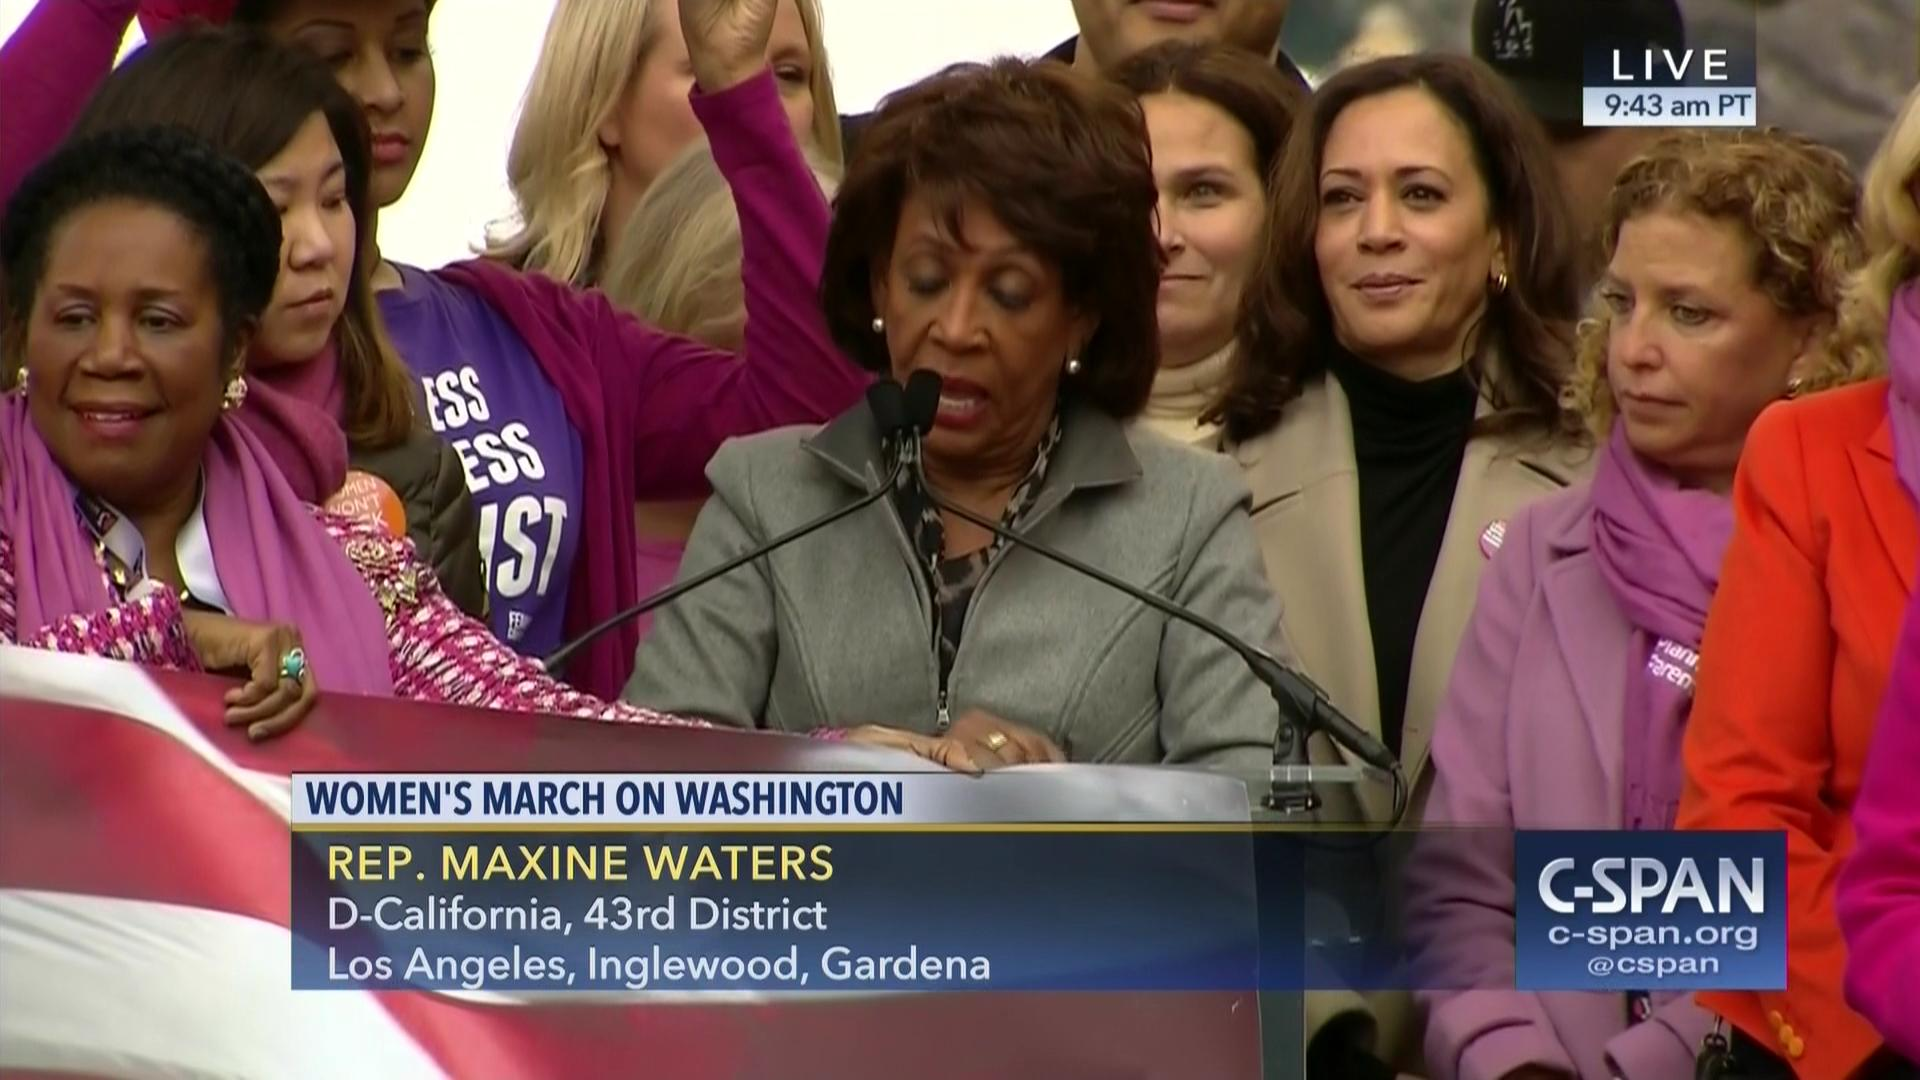 US Congresswoman MAXINE WATERS Supporting WOMENS MARCHES!